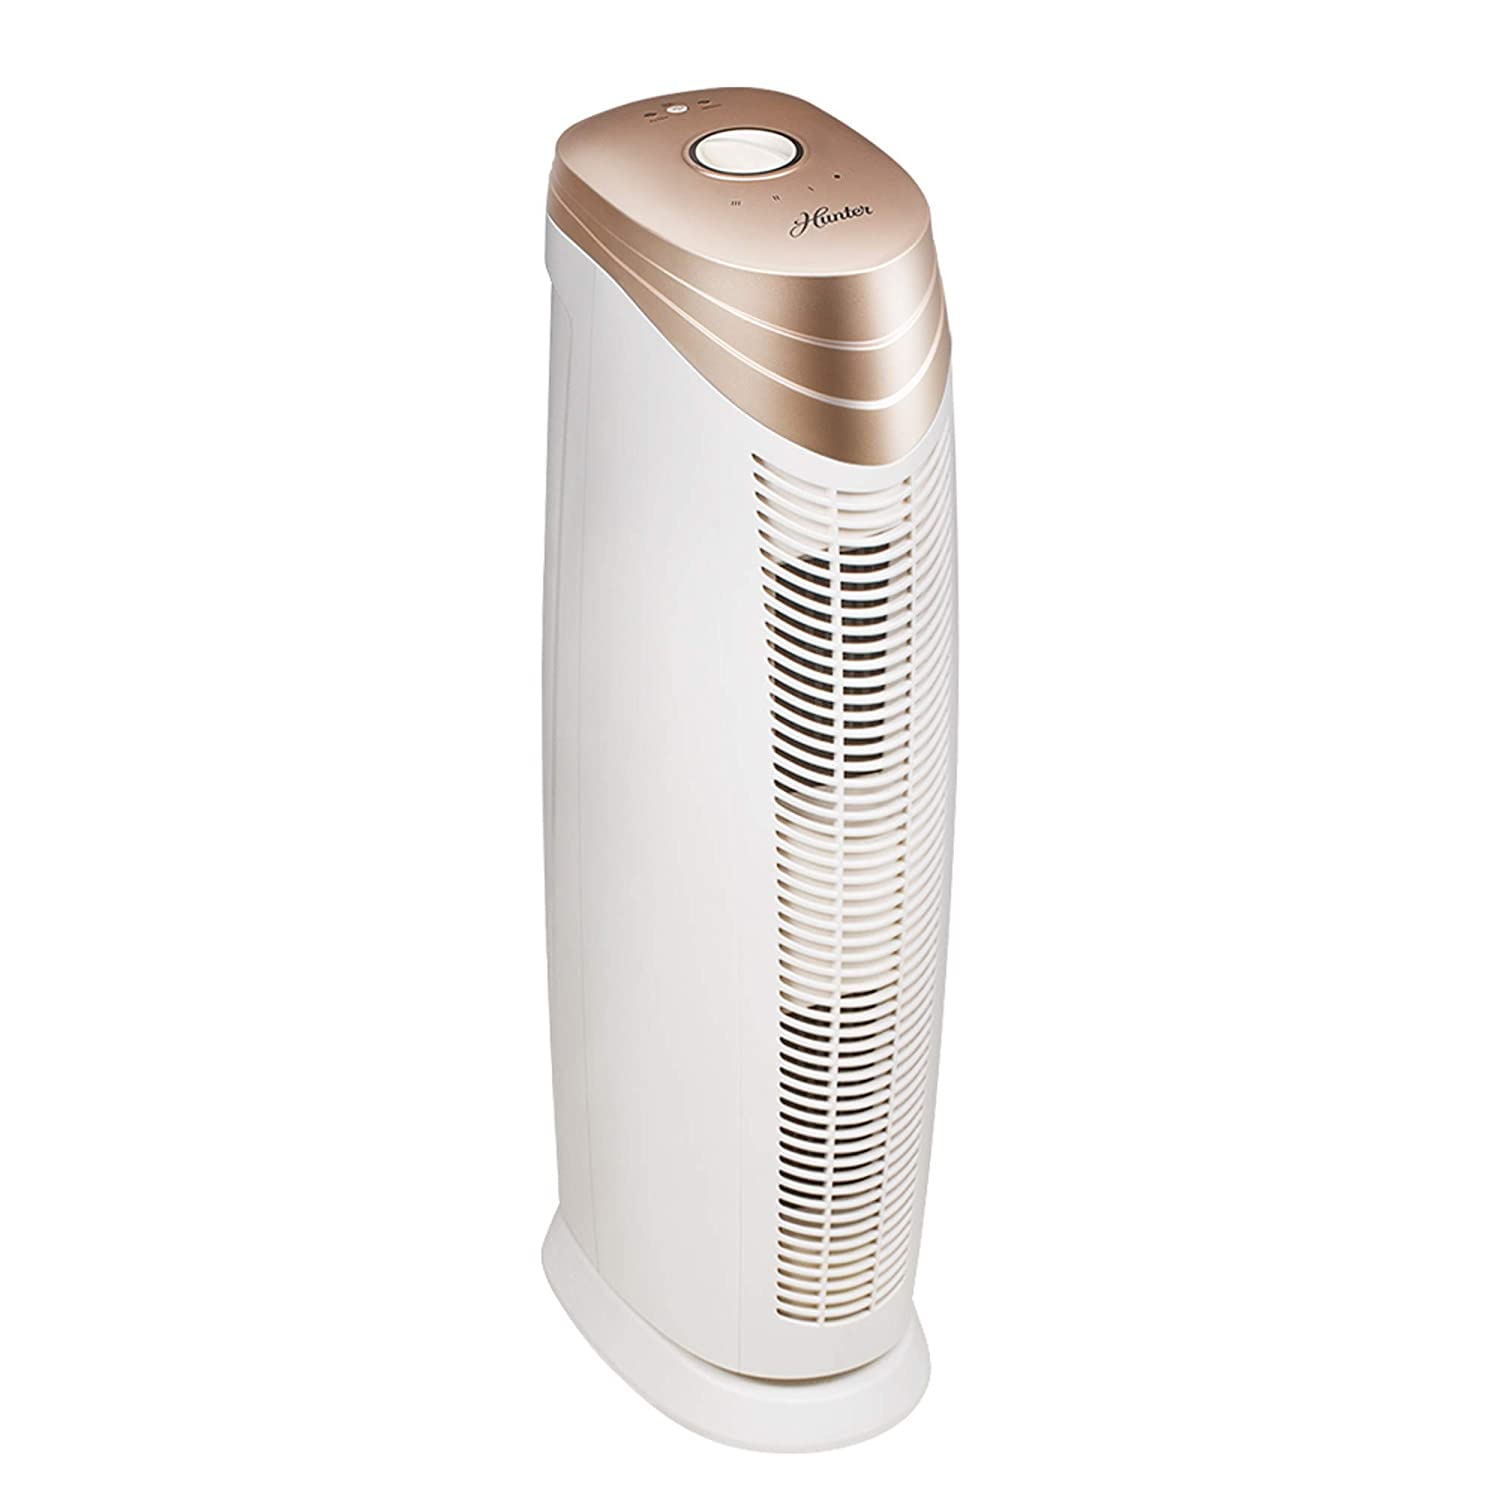 Odors Germs Dust Pollen Smoke for Allergies Hunter HT1701 Air Purifier with ViRo-Silver Pre-Filter and HEPA+ Filter 27-Inch Titanium//Black Air Cleaner for Large Rooms Mold Pets